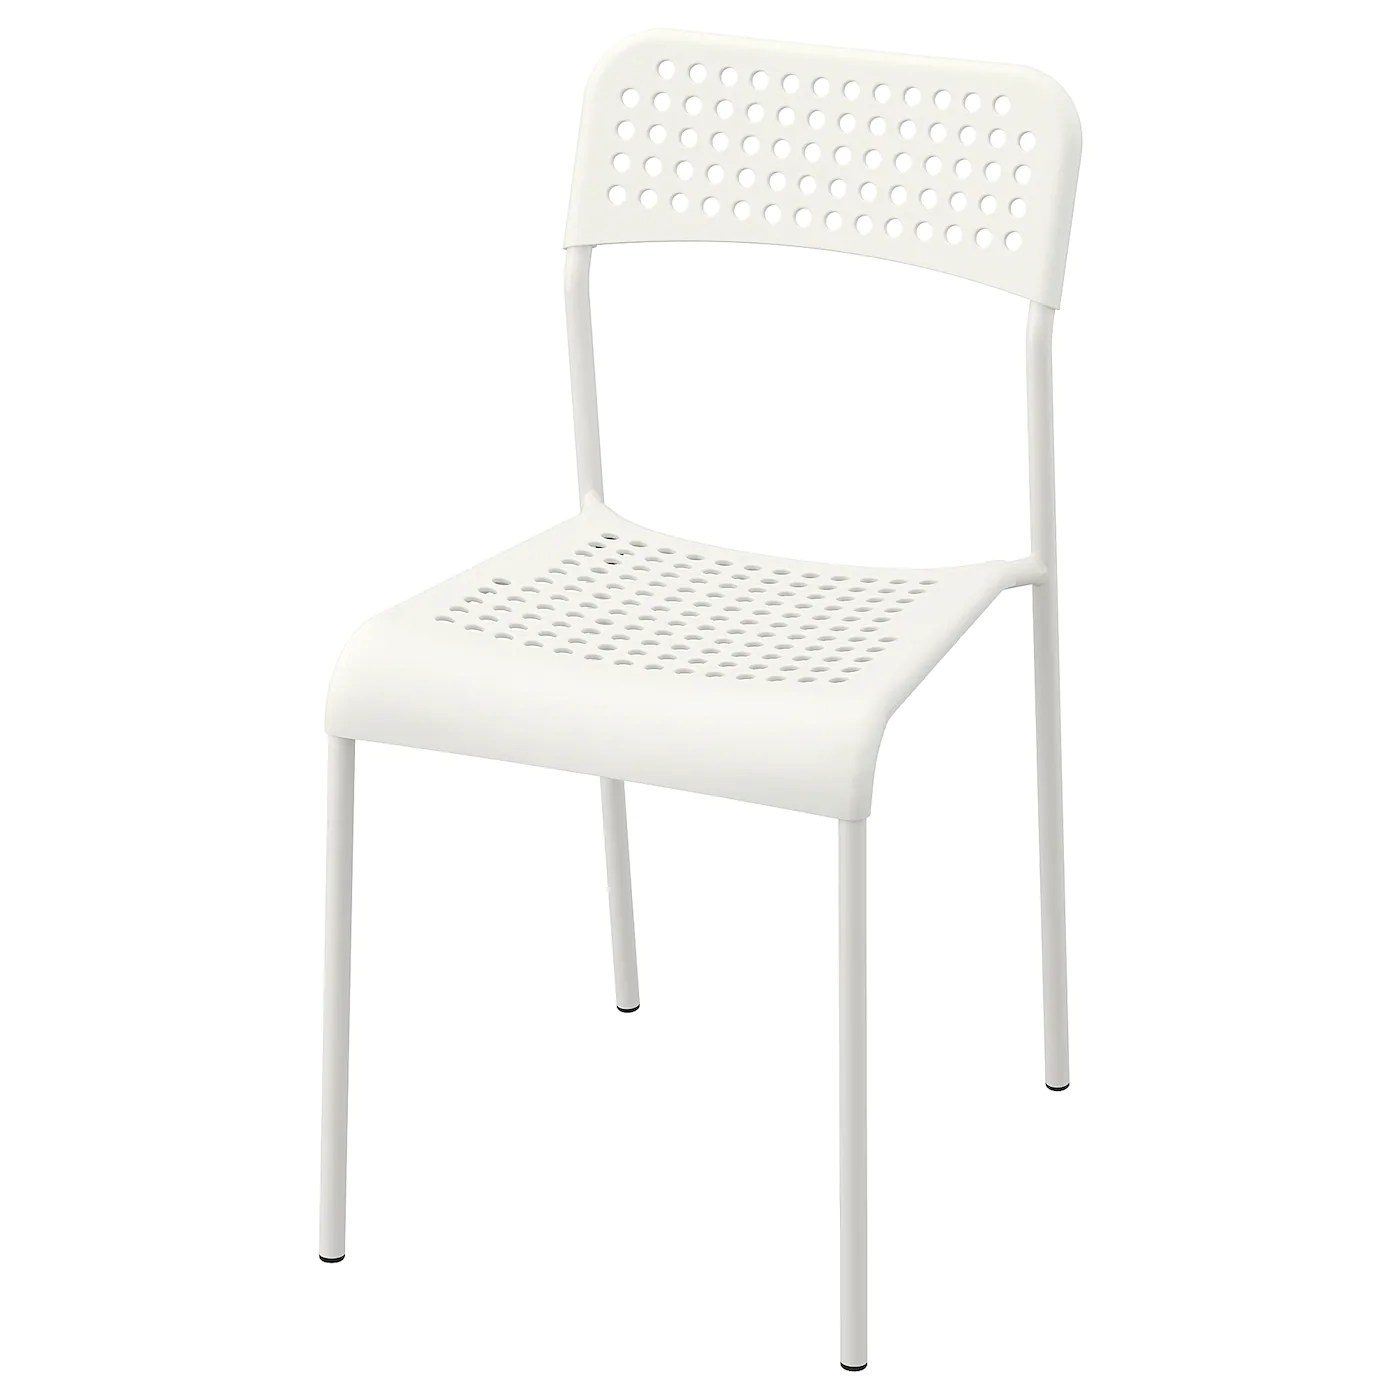 Dining Chairs Ikea Chairs Upholstered Foldable Dining Chairs Ikea